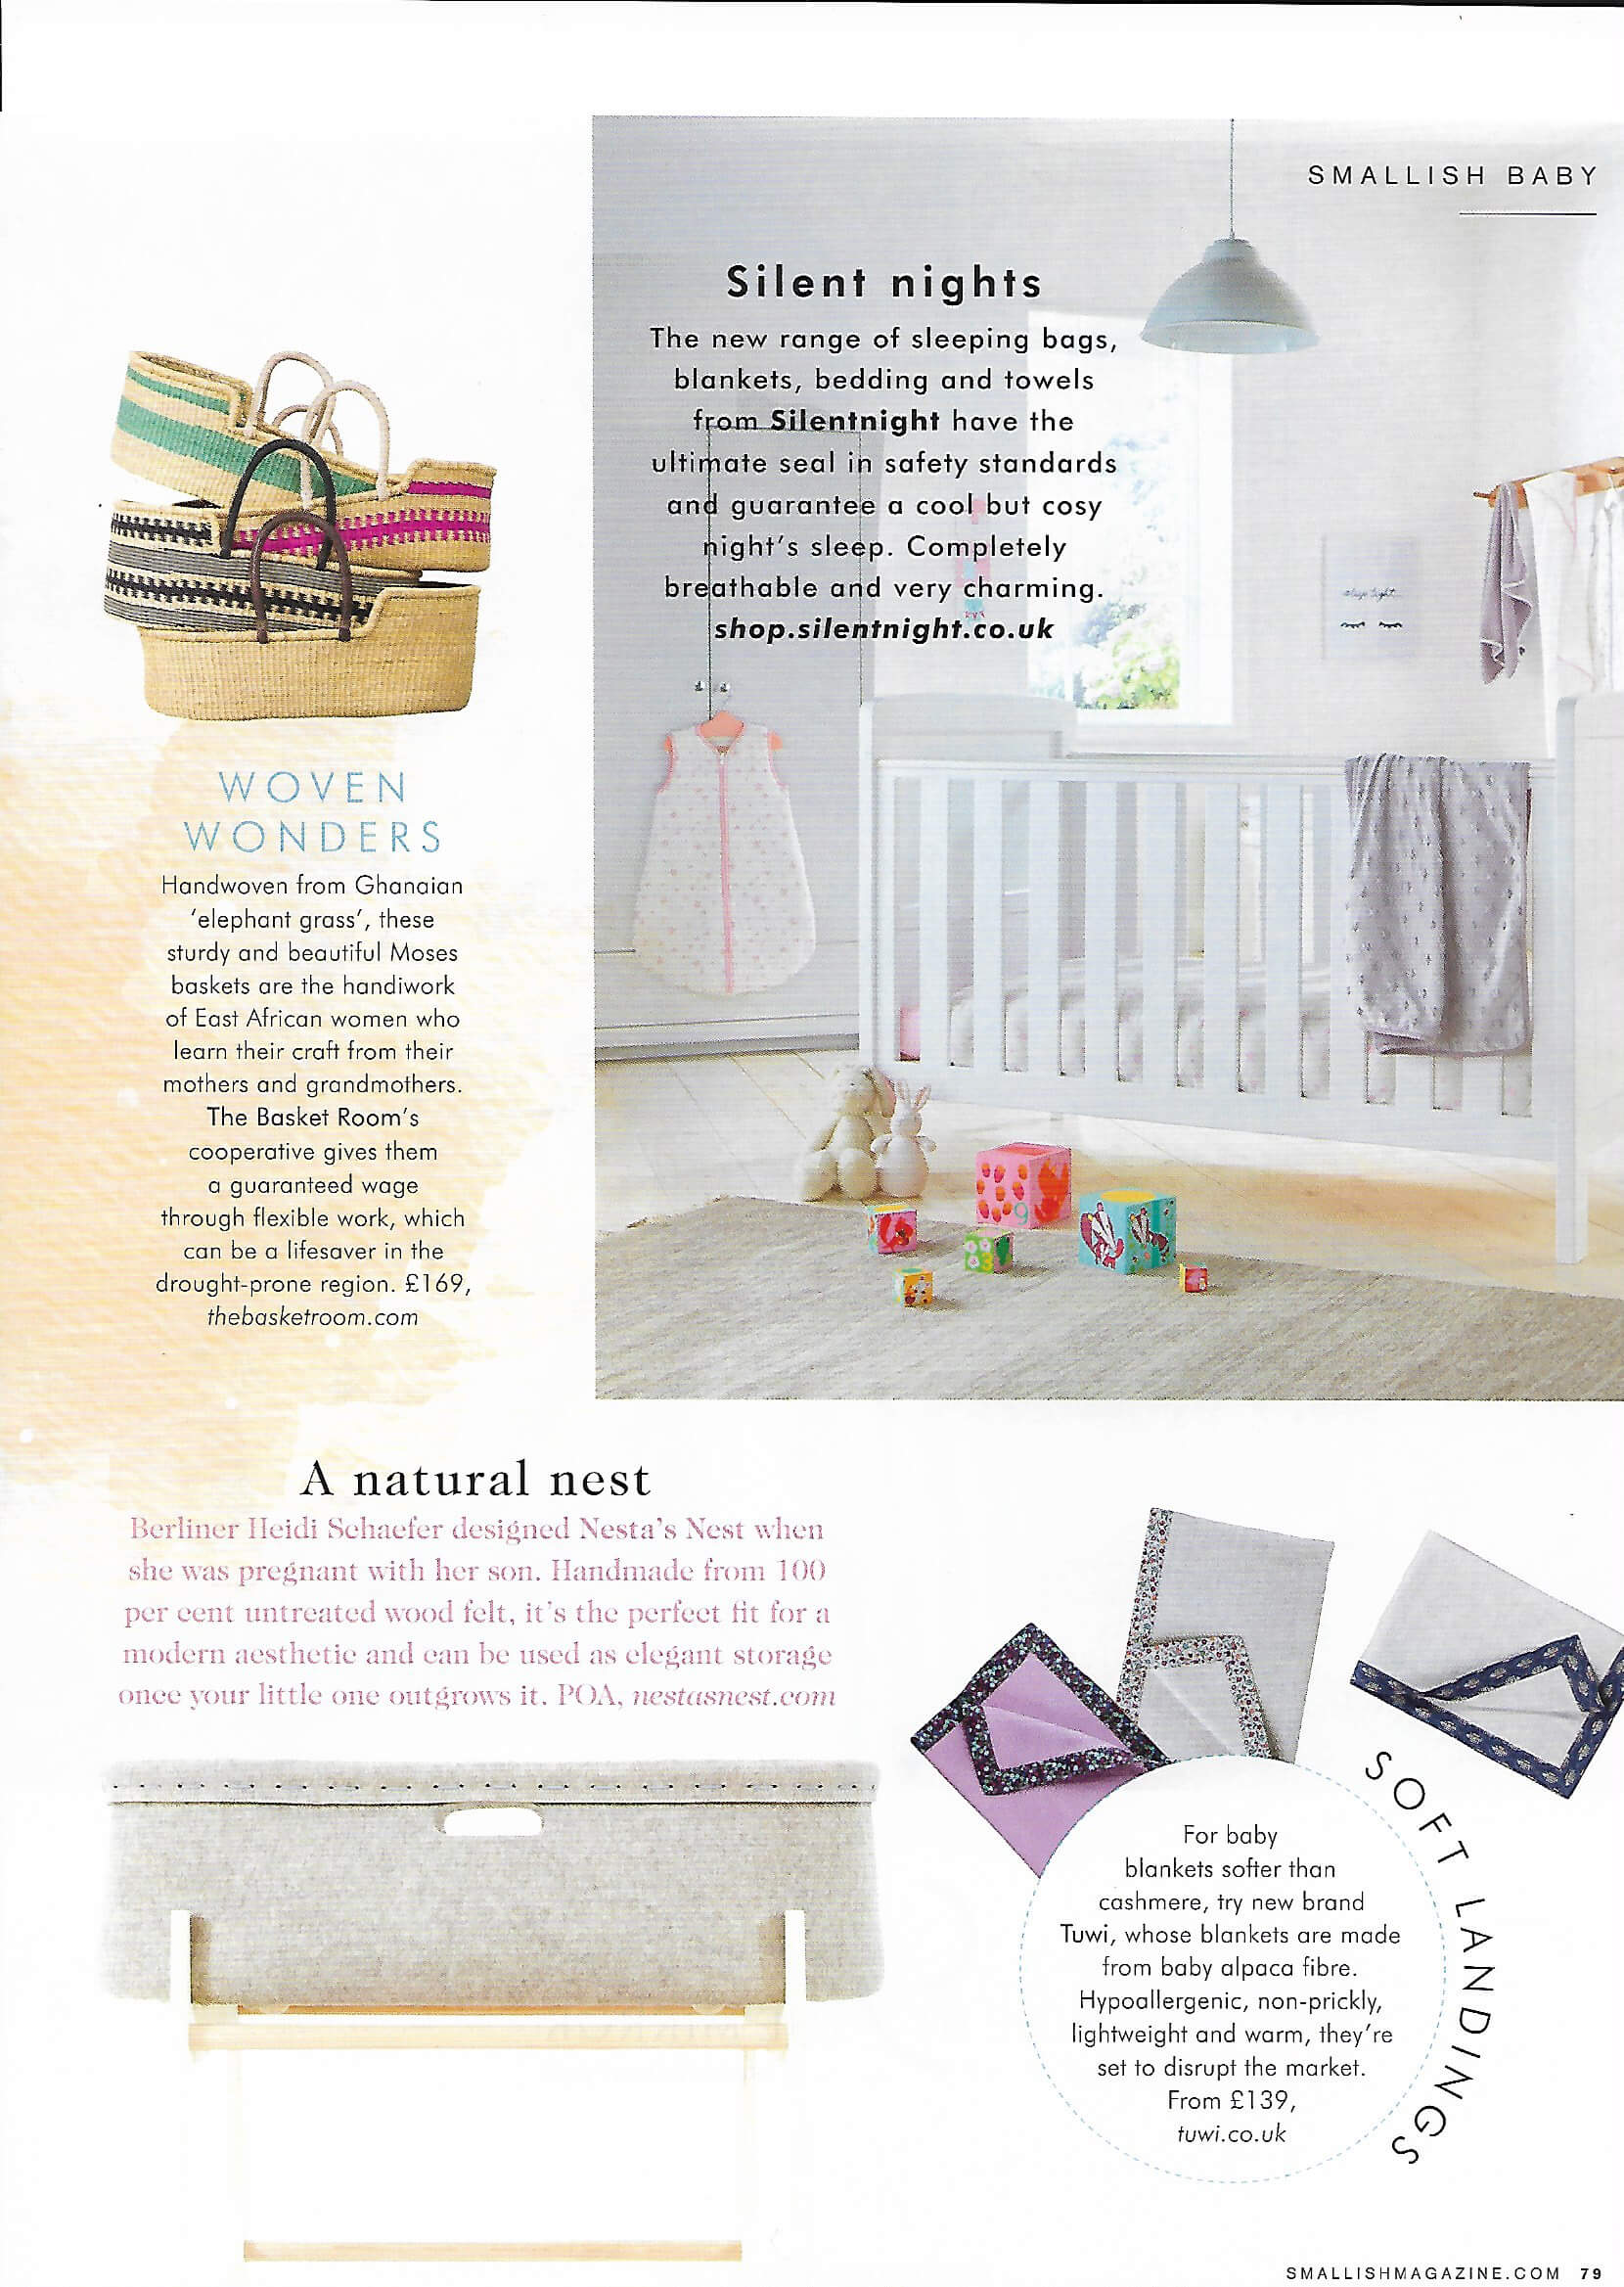 Smallish magazine April 2018 featuring Tuwi promotion article photo of child's room